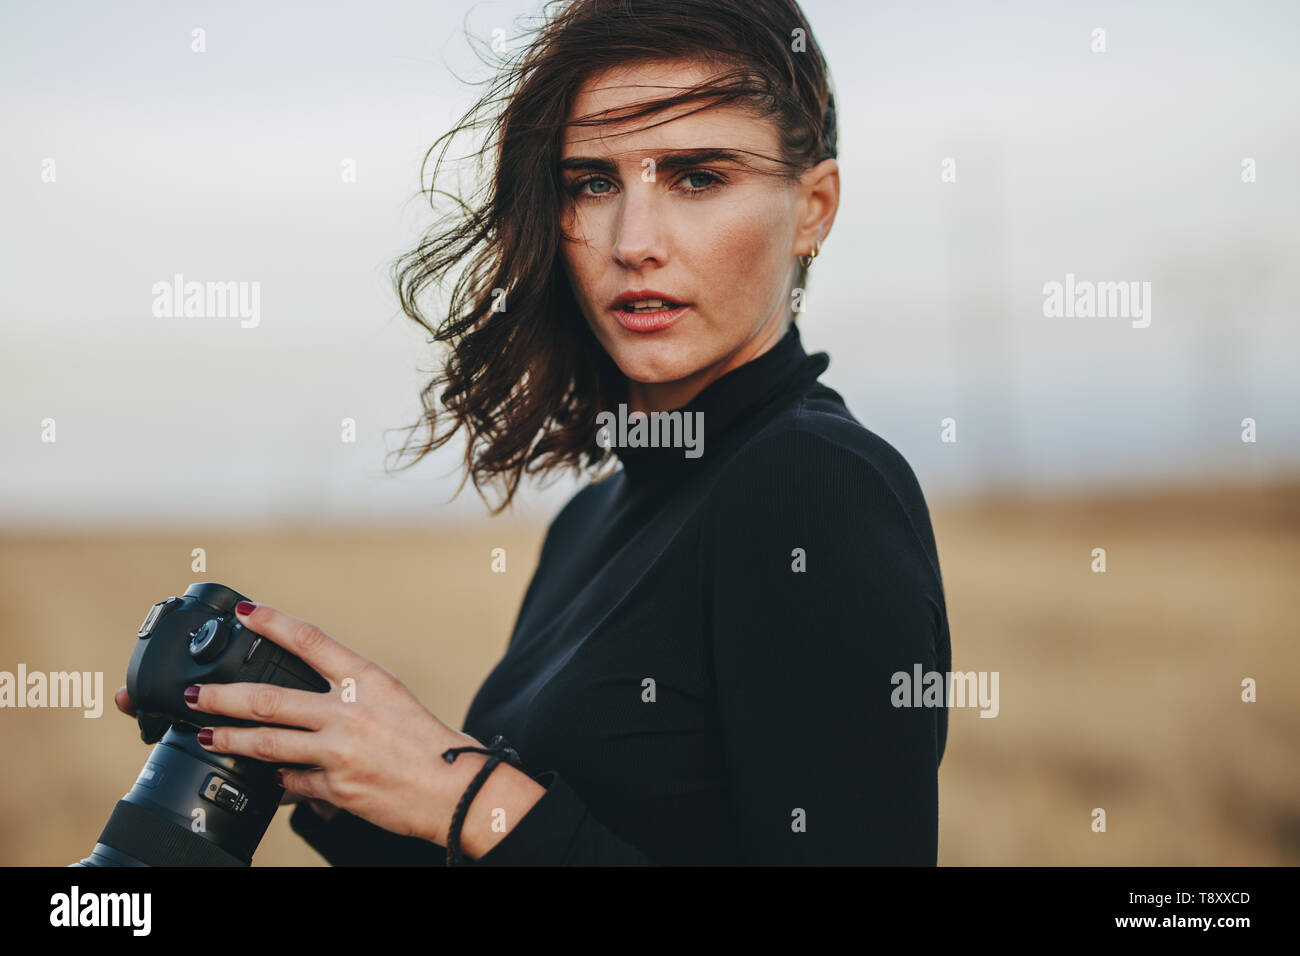 Professional Photographer During A Outdoors Photoshoot Young Woman In Casual Holding A Photo Camera Outdoors Stock Photo Alamy